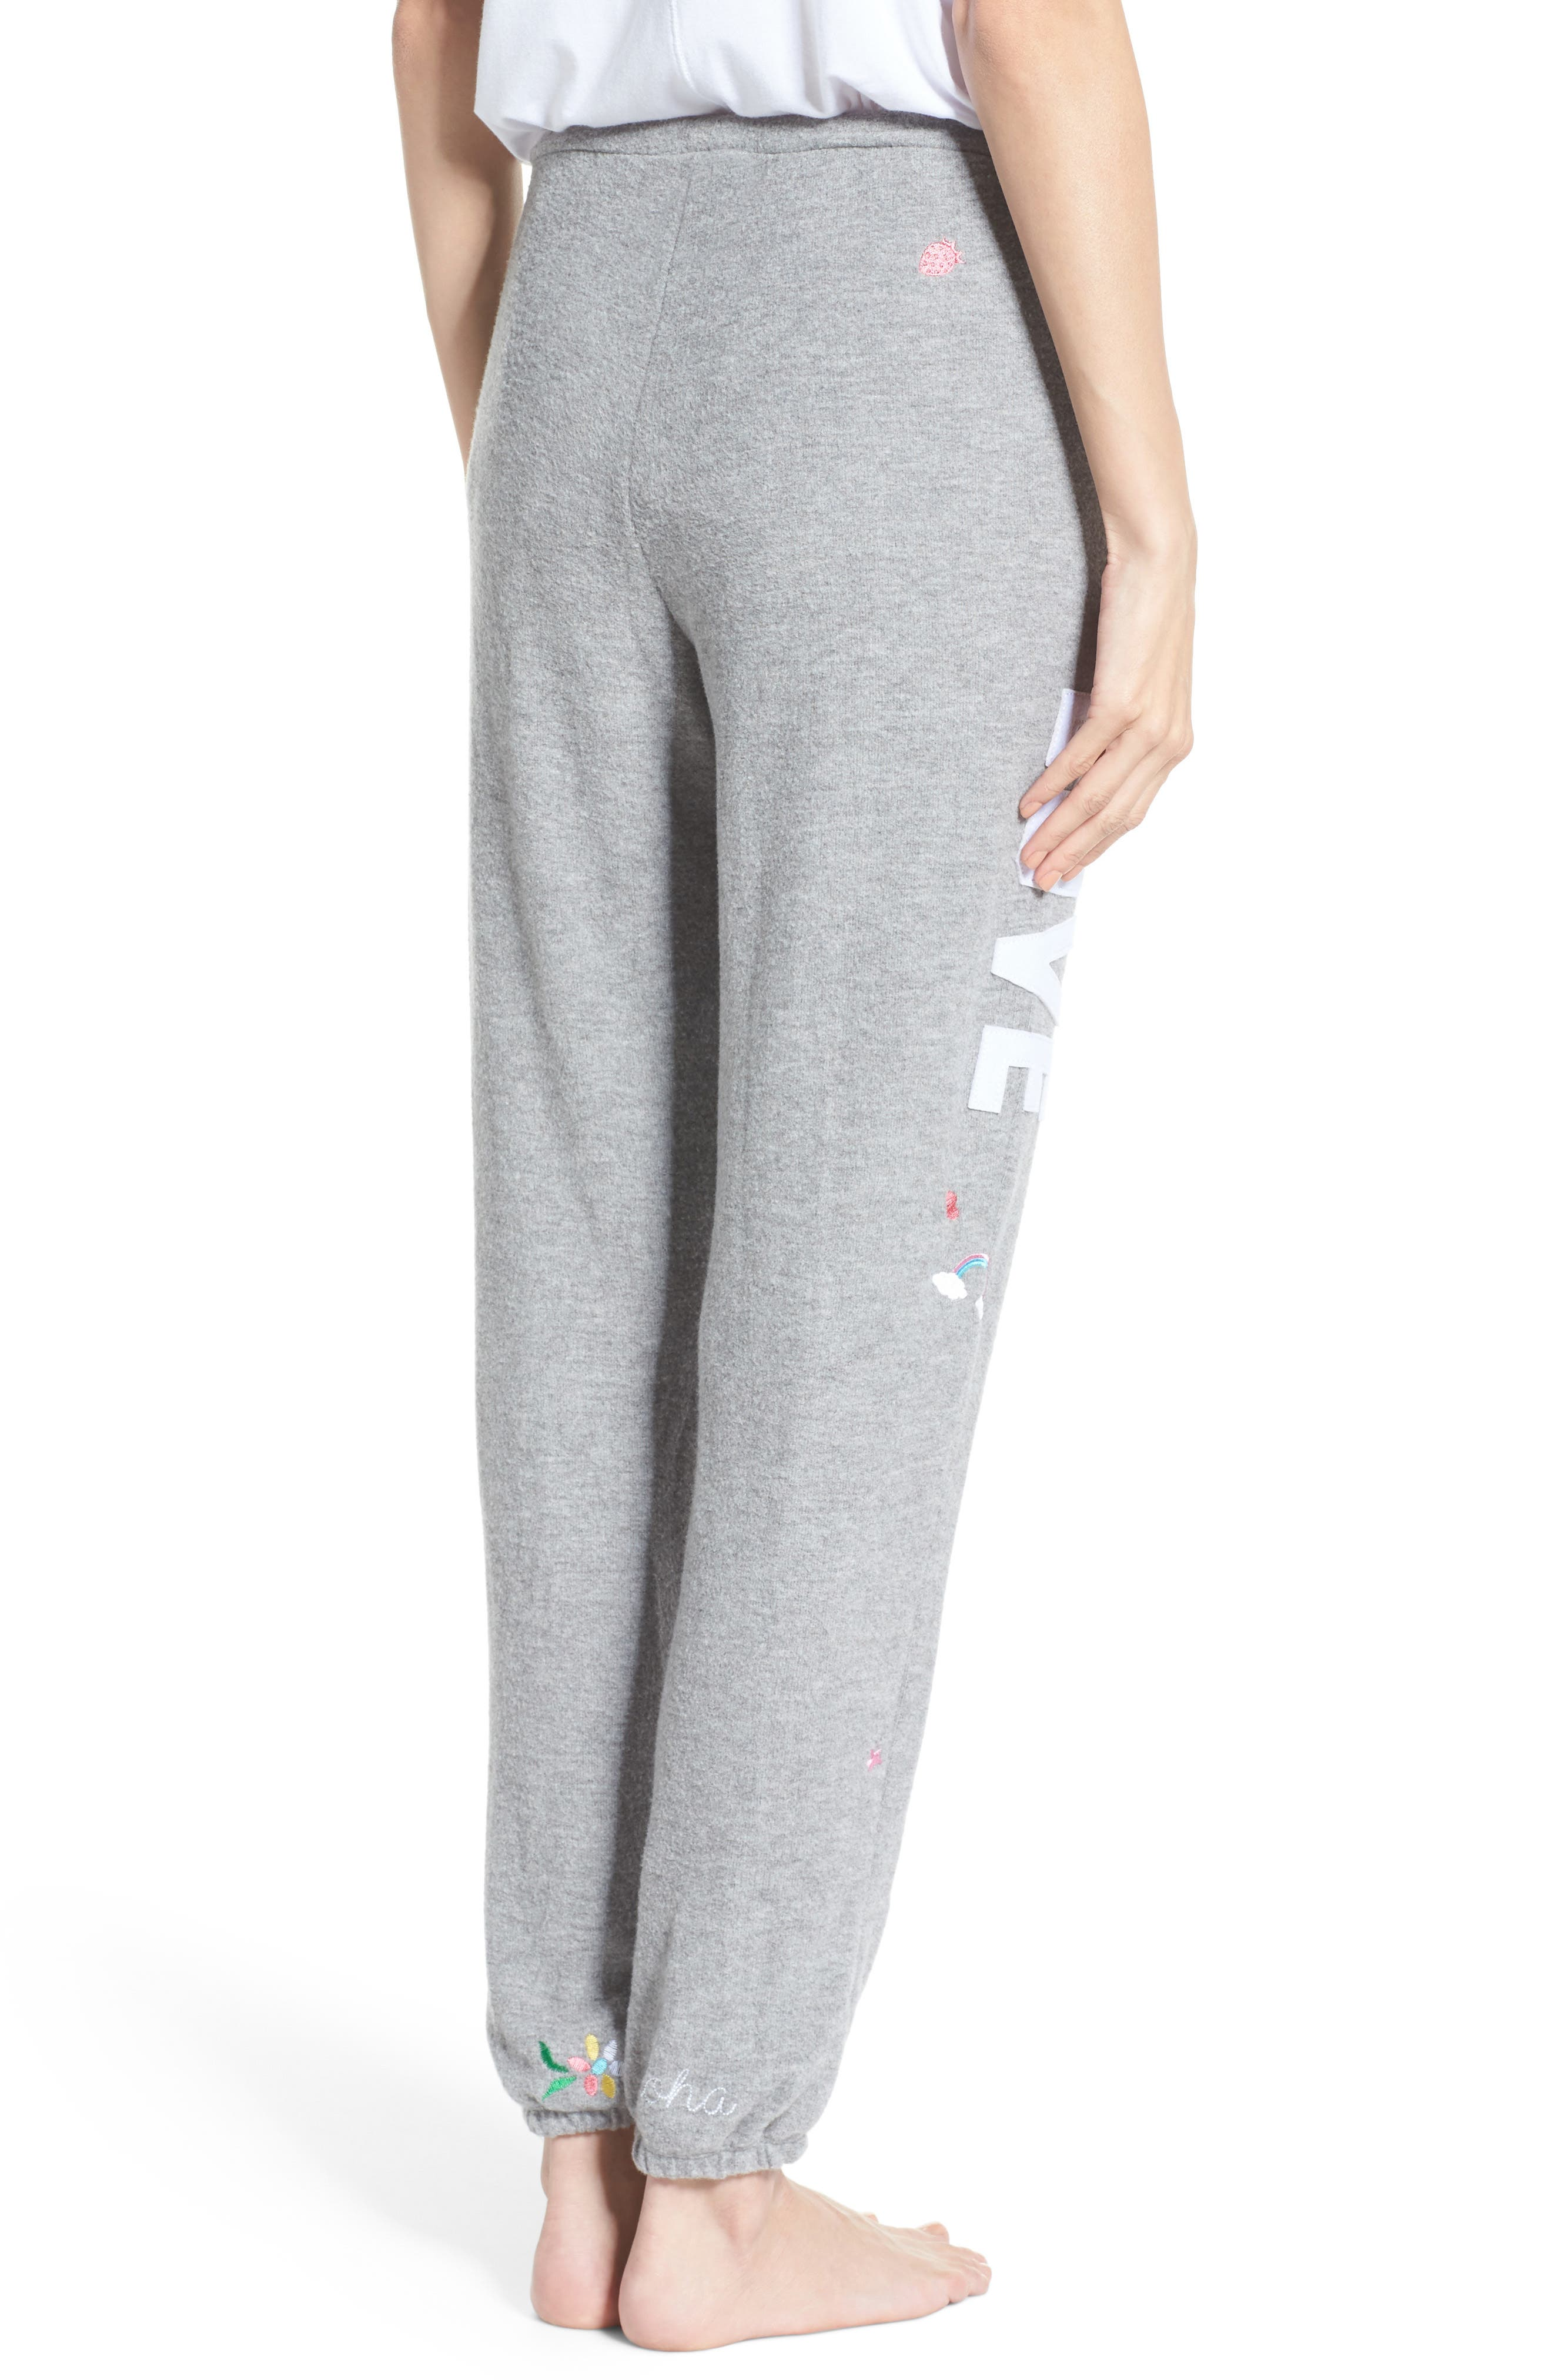 Patched Up Lounge Sweatpants,                             Alternate thumbnail 2, color,                             Heather Grey